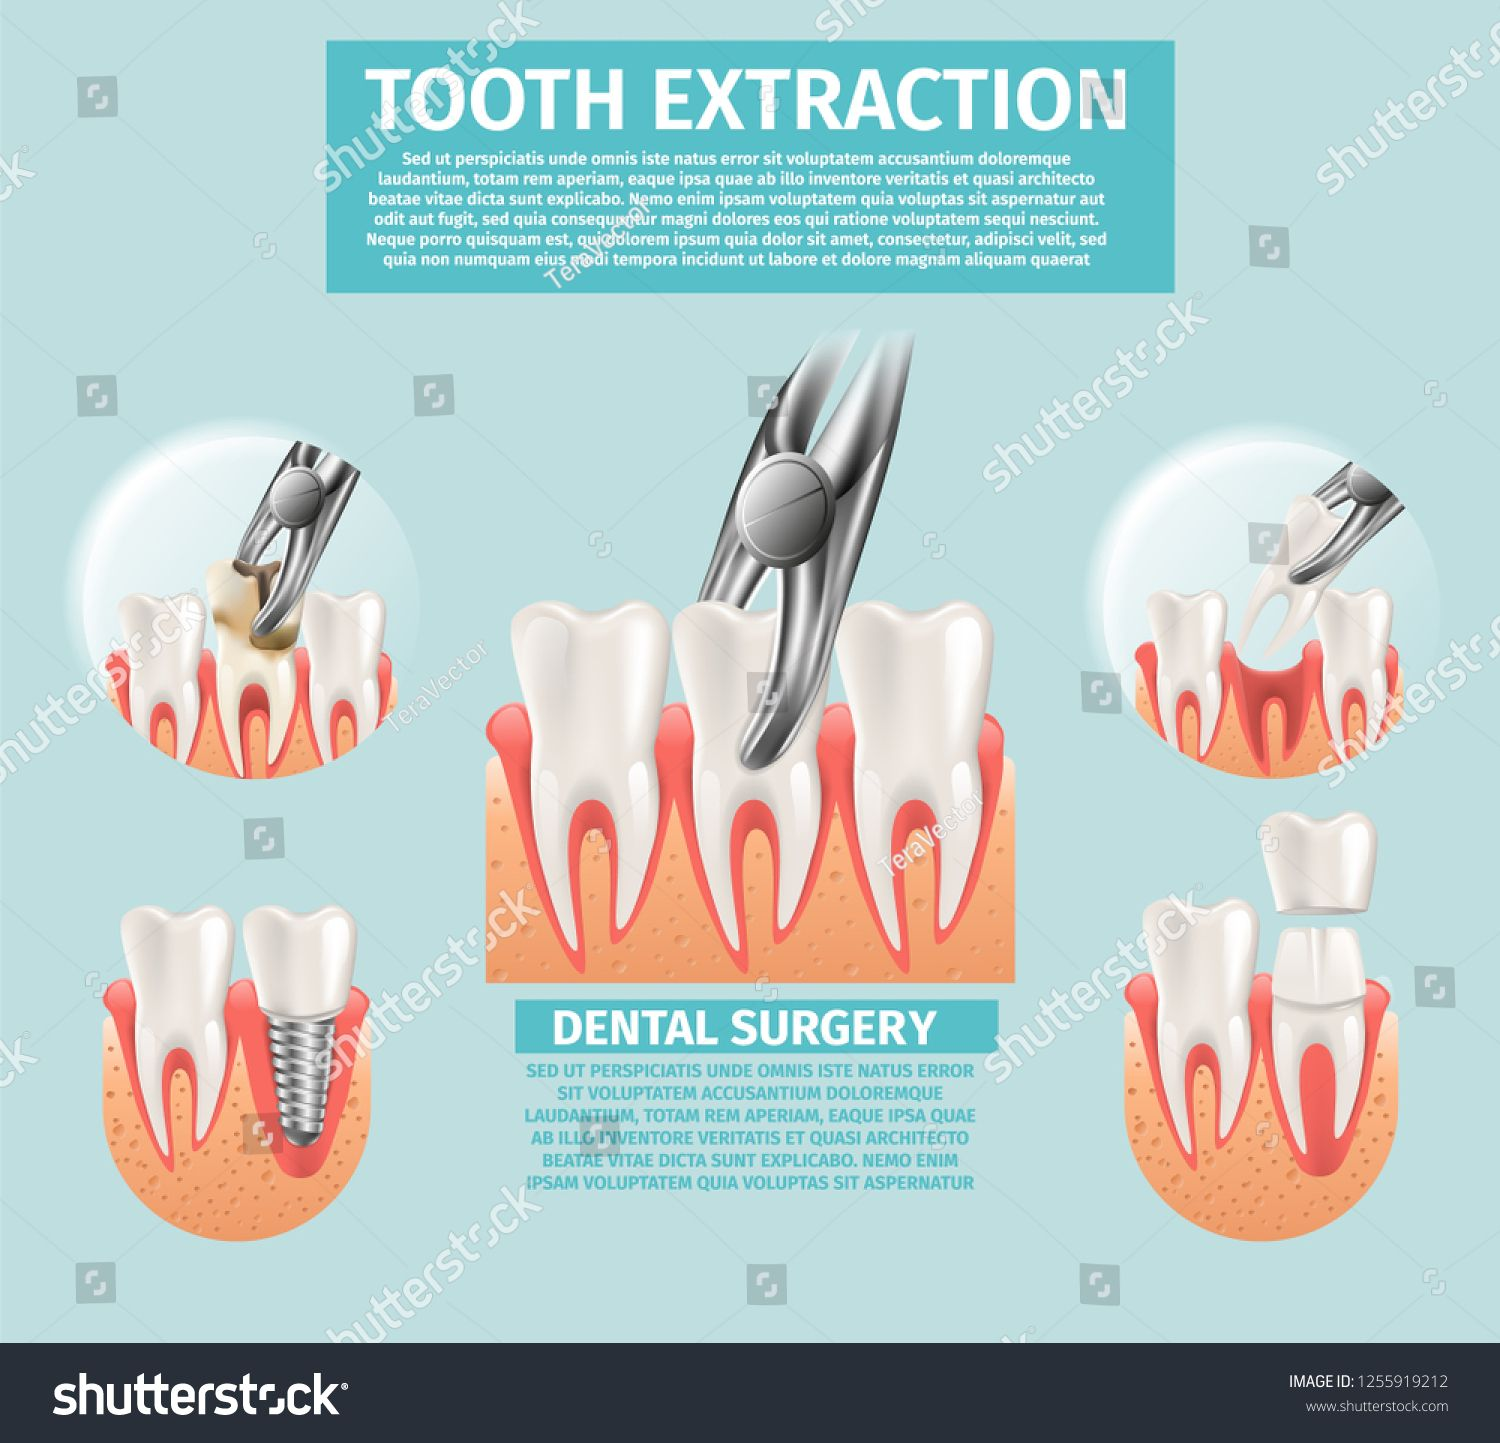 Realistic Illustration Tooth Extraction Vector 3d Banner Set Image Dental Surgery Procedures Tooth Ext Tooth Extraction Tooth Decay In Children Dental Surgery